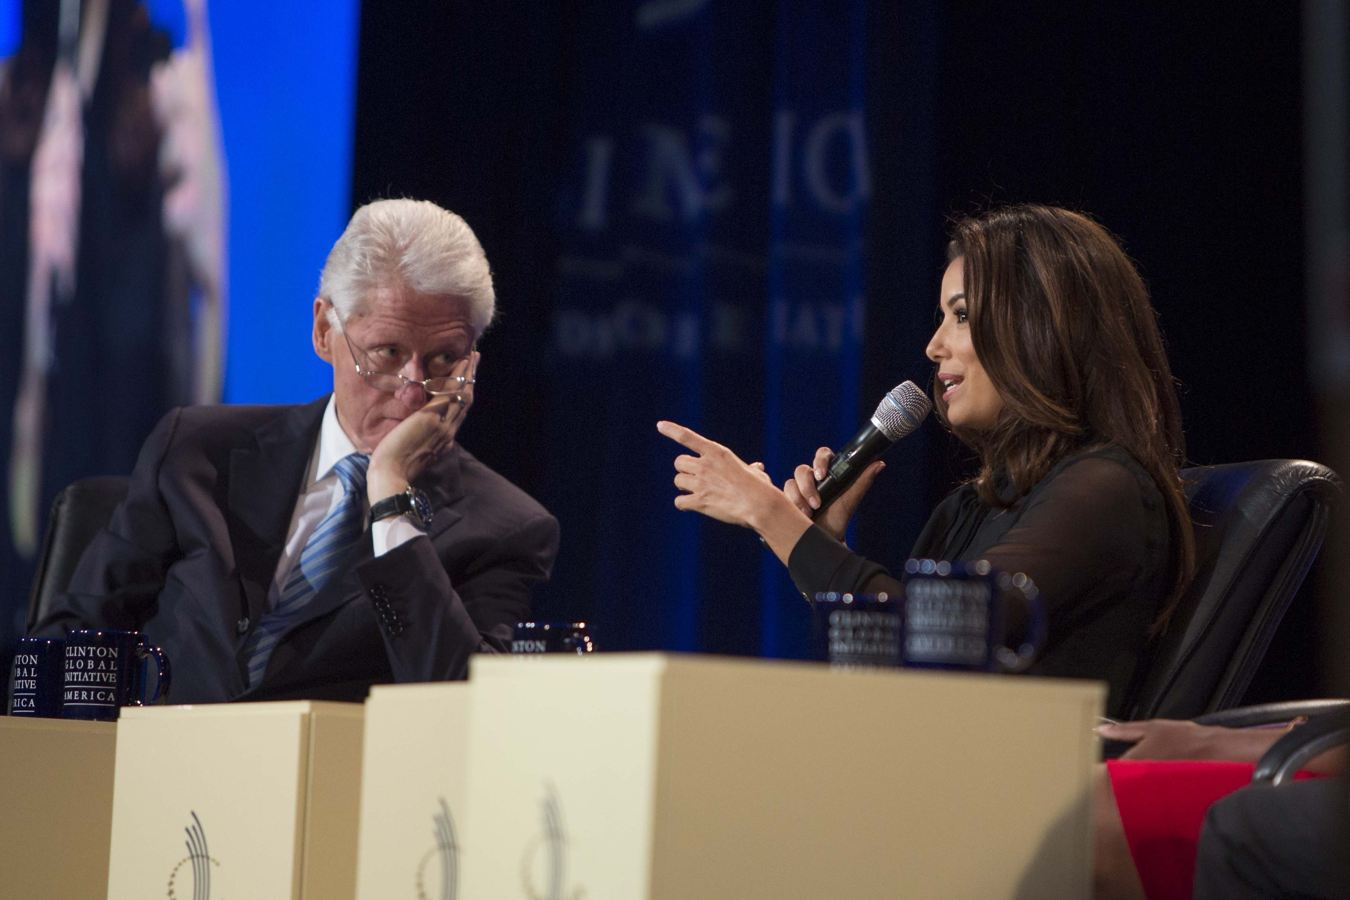 Former U.S. President Bill Clinton listens to Eva Longoria during a panel at the Clinton Global Initiative (CGI) meeting in Chicago, Thursday, June 13, 2013. During this opening session, Clinton was joined by other politicians and business leaders to discuss new ways to achieve economic and social mobility. (AP Photo/Scott Eisen)